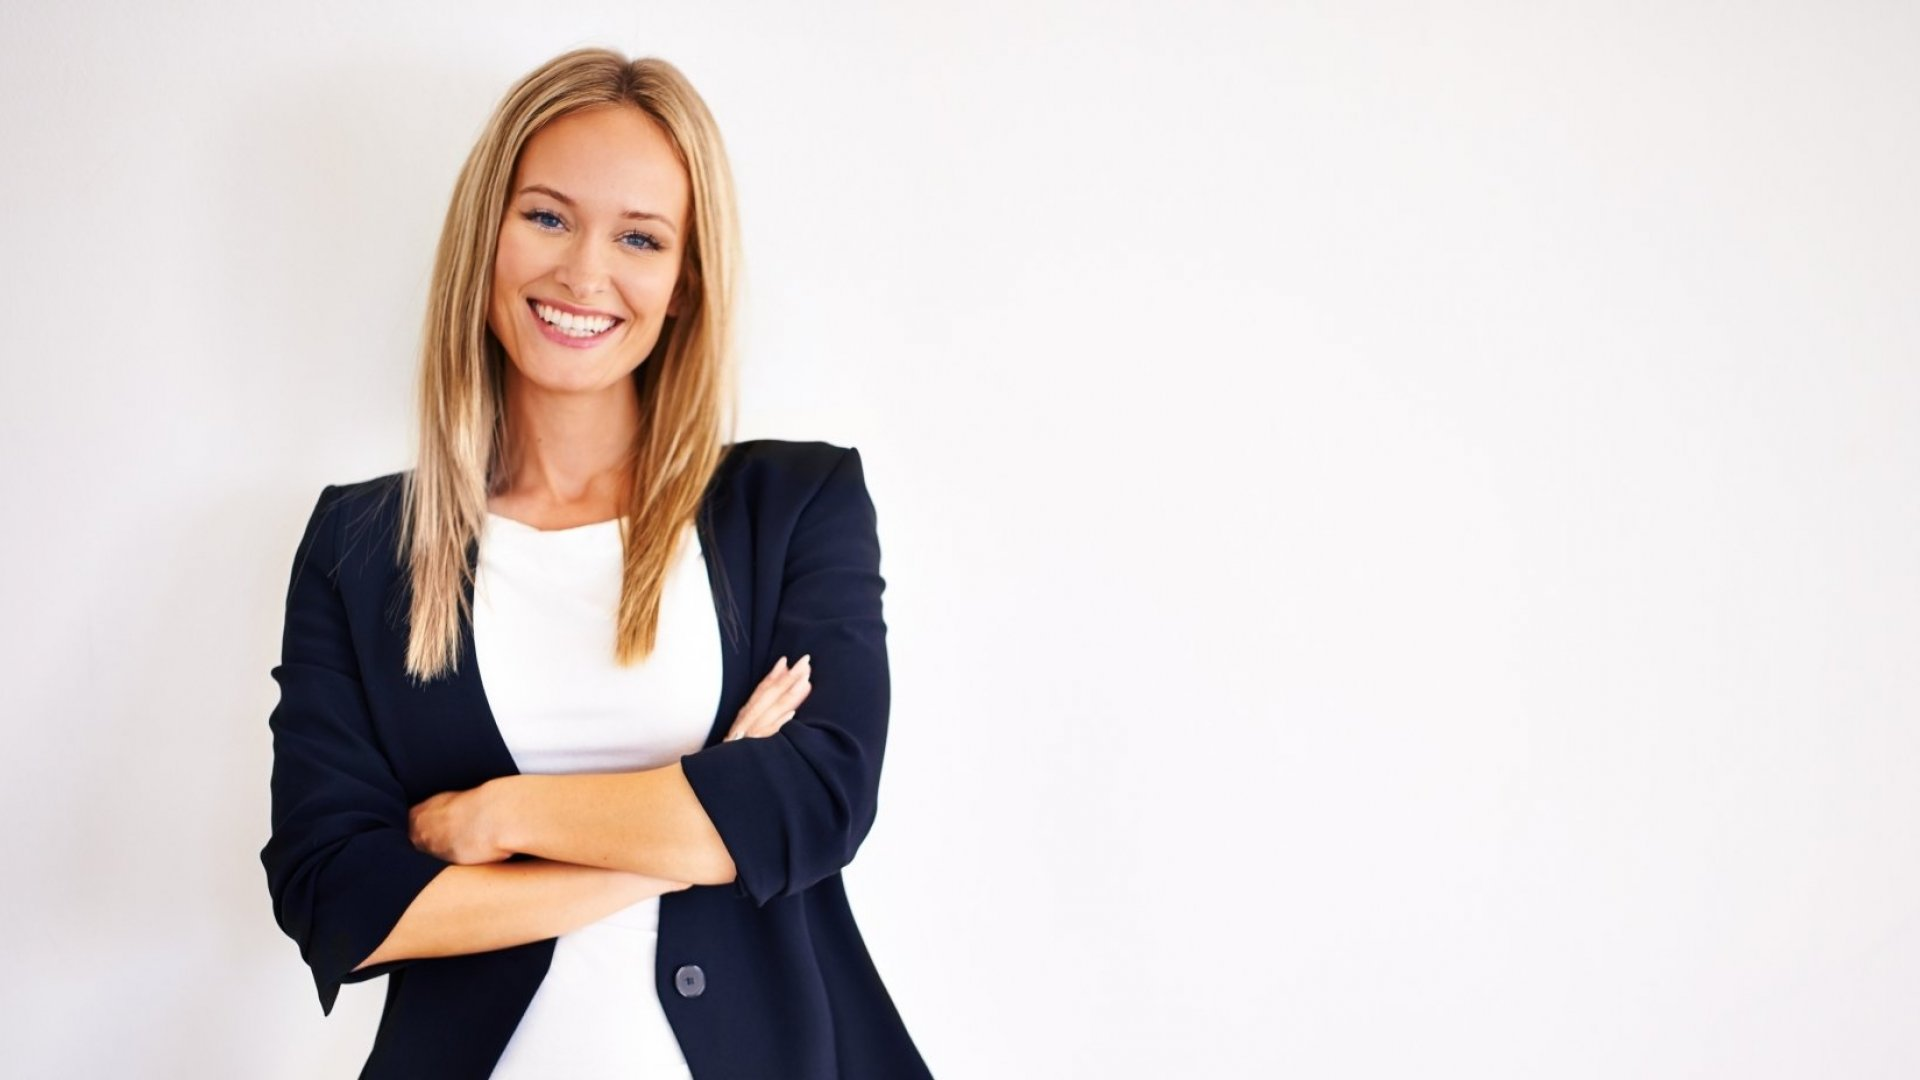 5 Quick Hacks to Instantly Boost Your Confidence